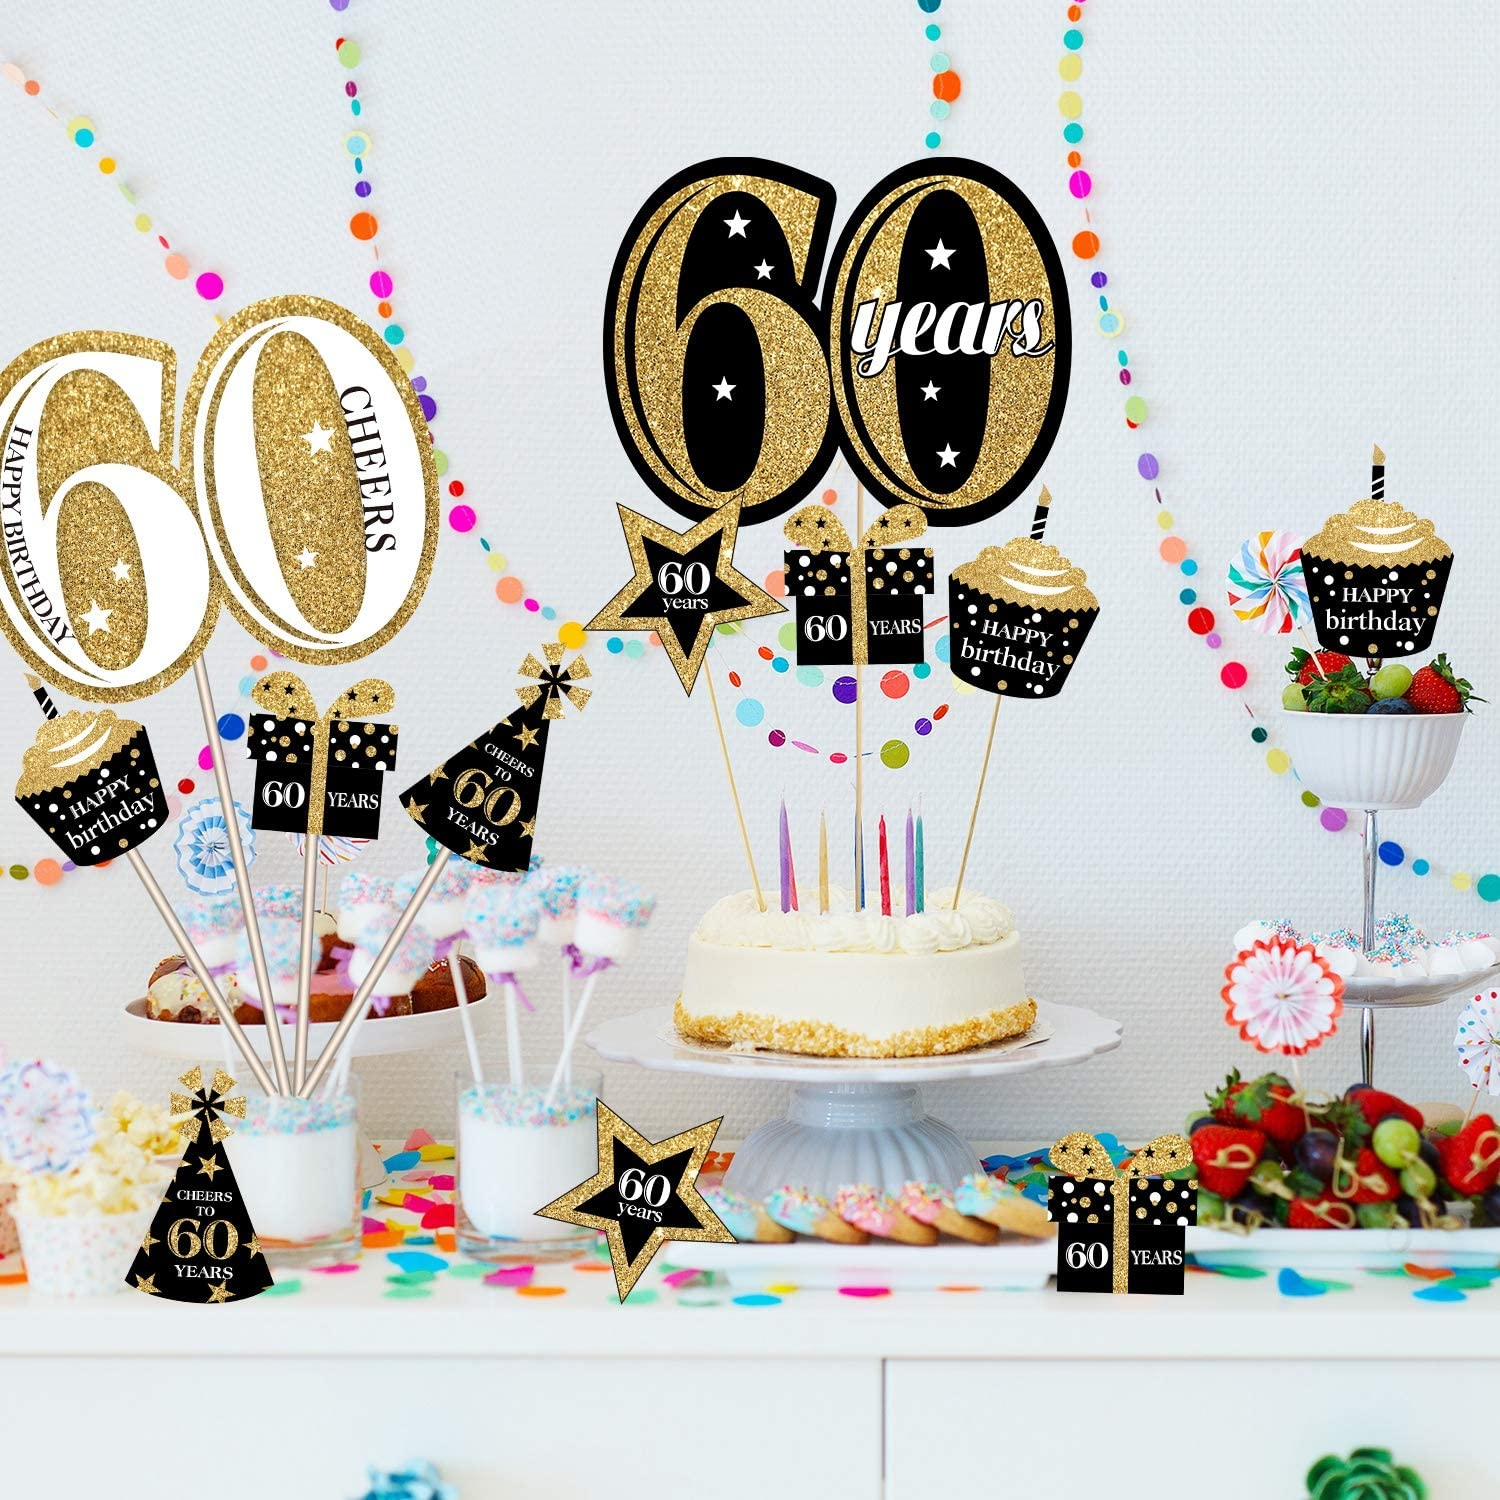 Blulu 50th Anniversary Party Decoration Set 50th Anniversary Golden Birthday Party Centerpiece Sticks Glitter Table Toppers Party Supplies 50th Anniversary 24 Pack